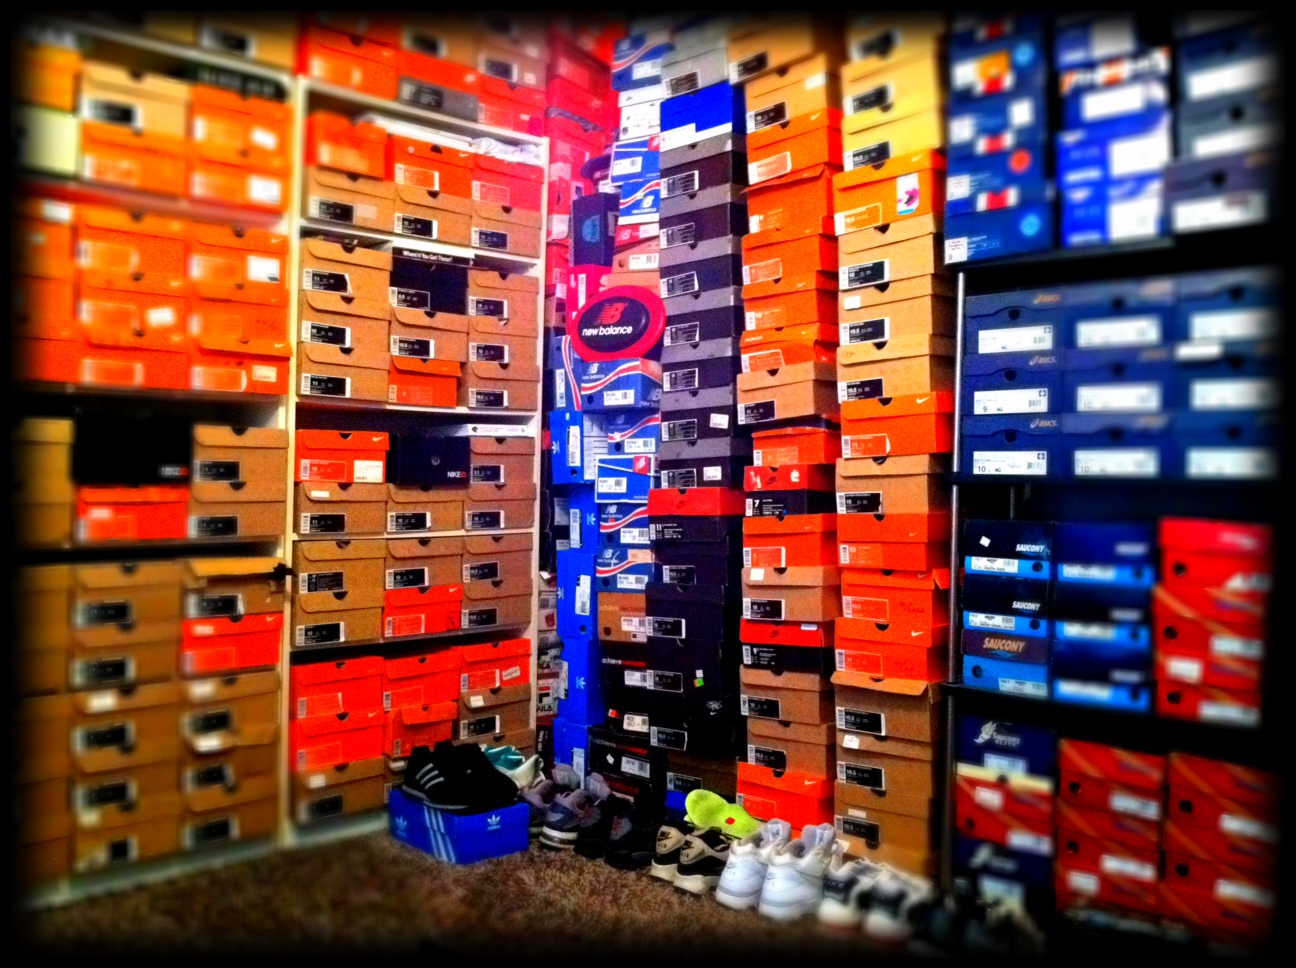 20 Of The Most Epic Sneaker Collection Photos Youll Ever See